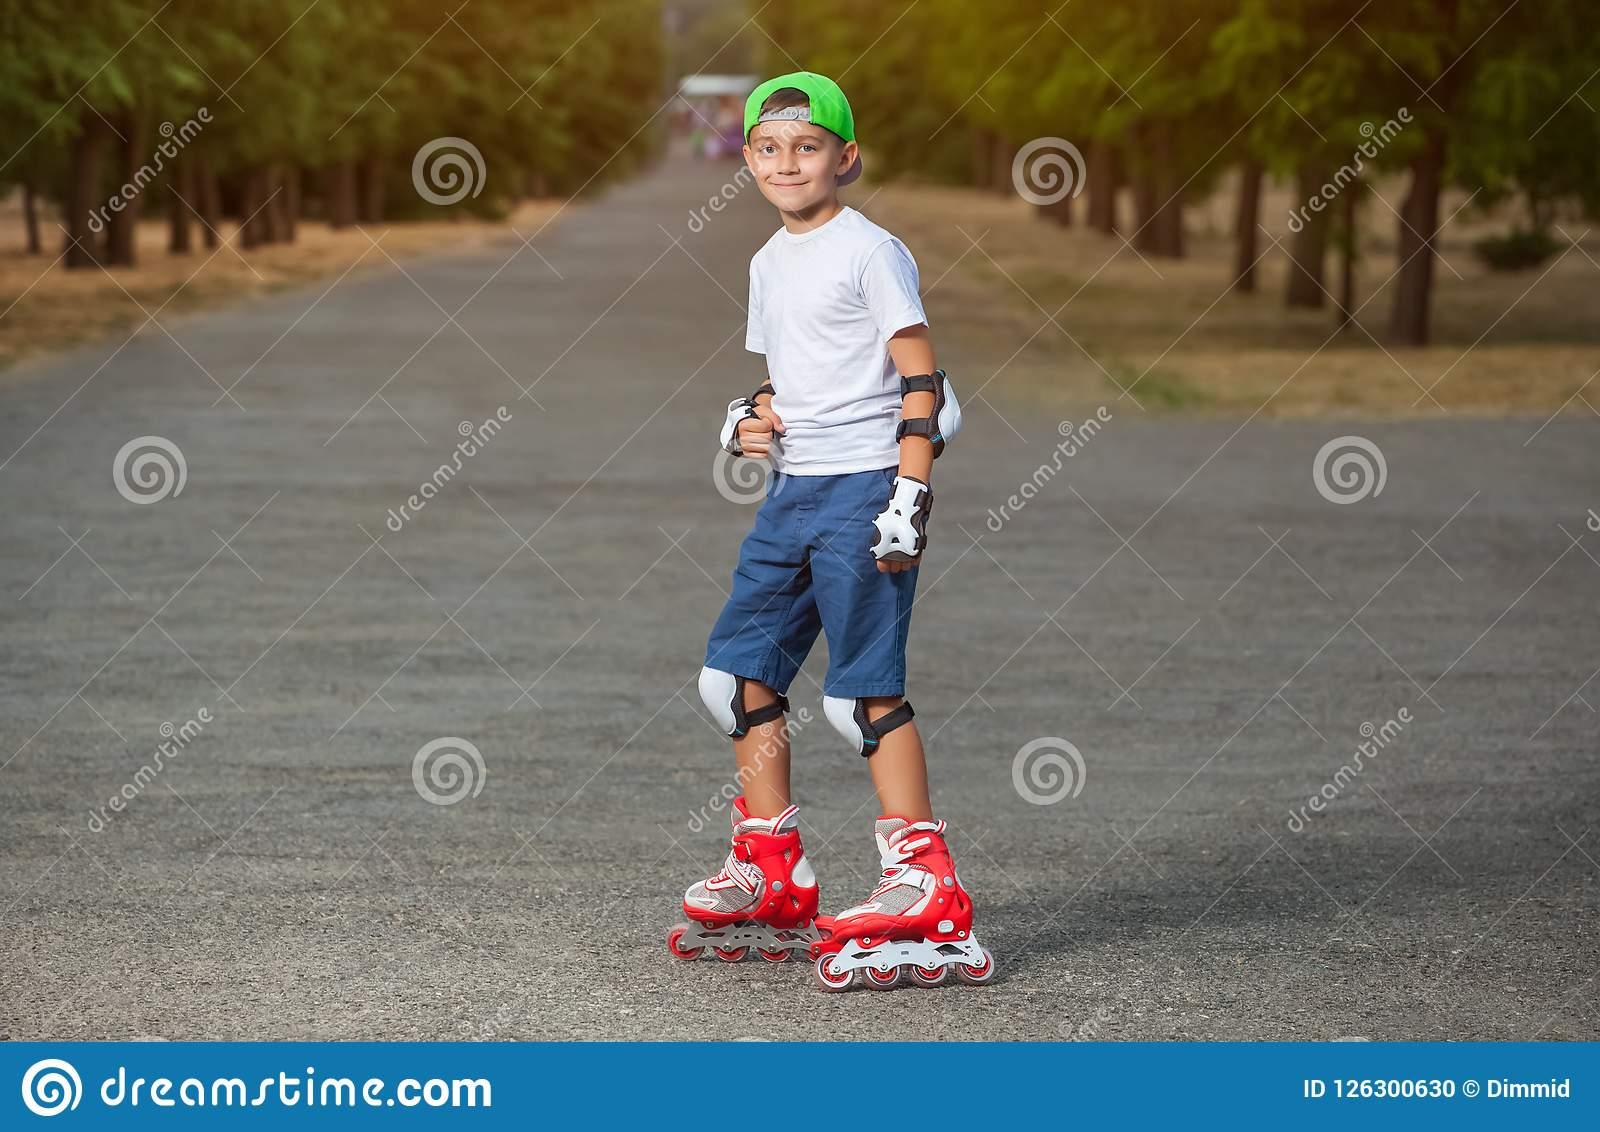 The boy put on protective knee pads and skates in the park